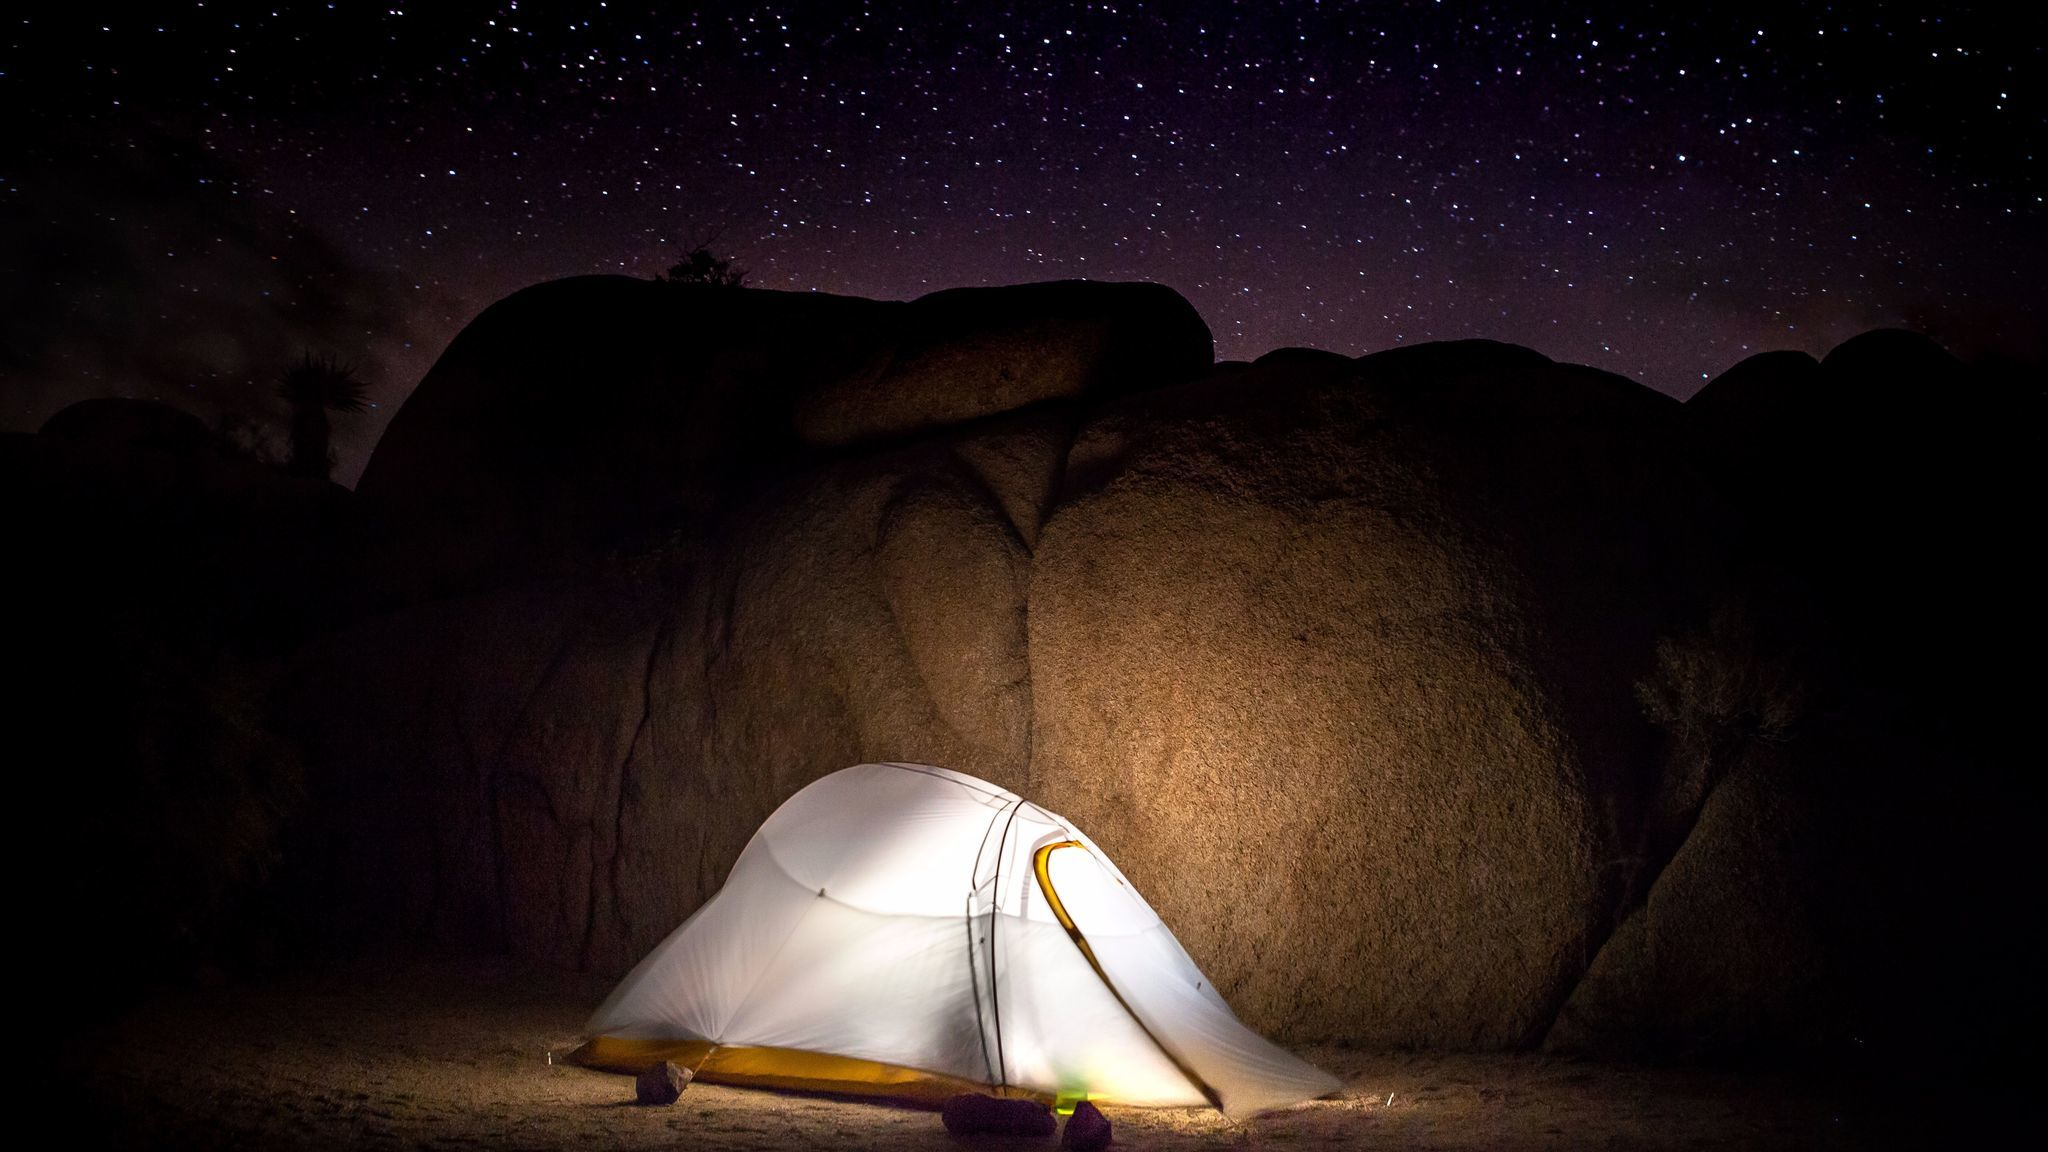 The glow of a tent camp light casts on the large boulders shielding the heavy winds on a starry night at the Jumbo Rocks Campground in Joshua Tree National Park.